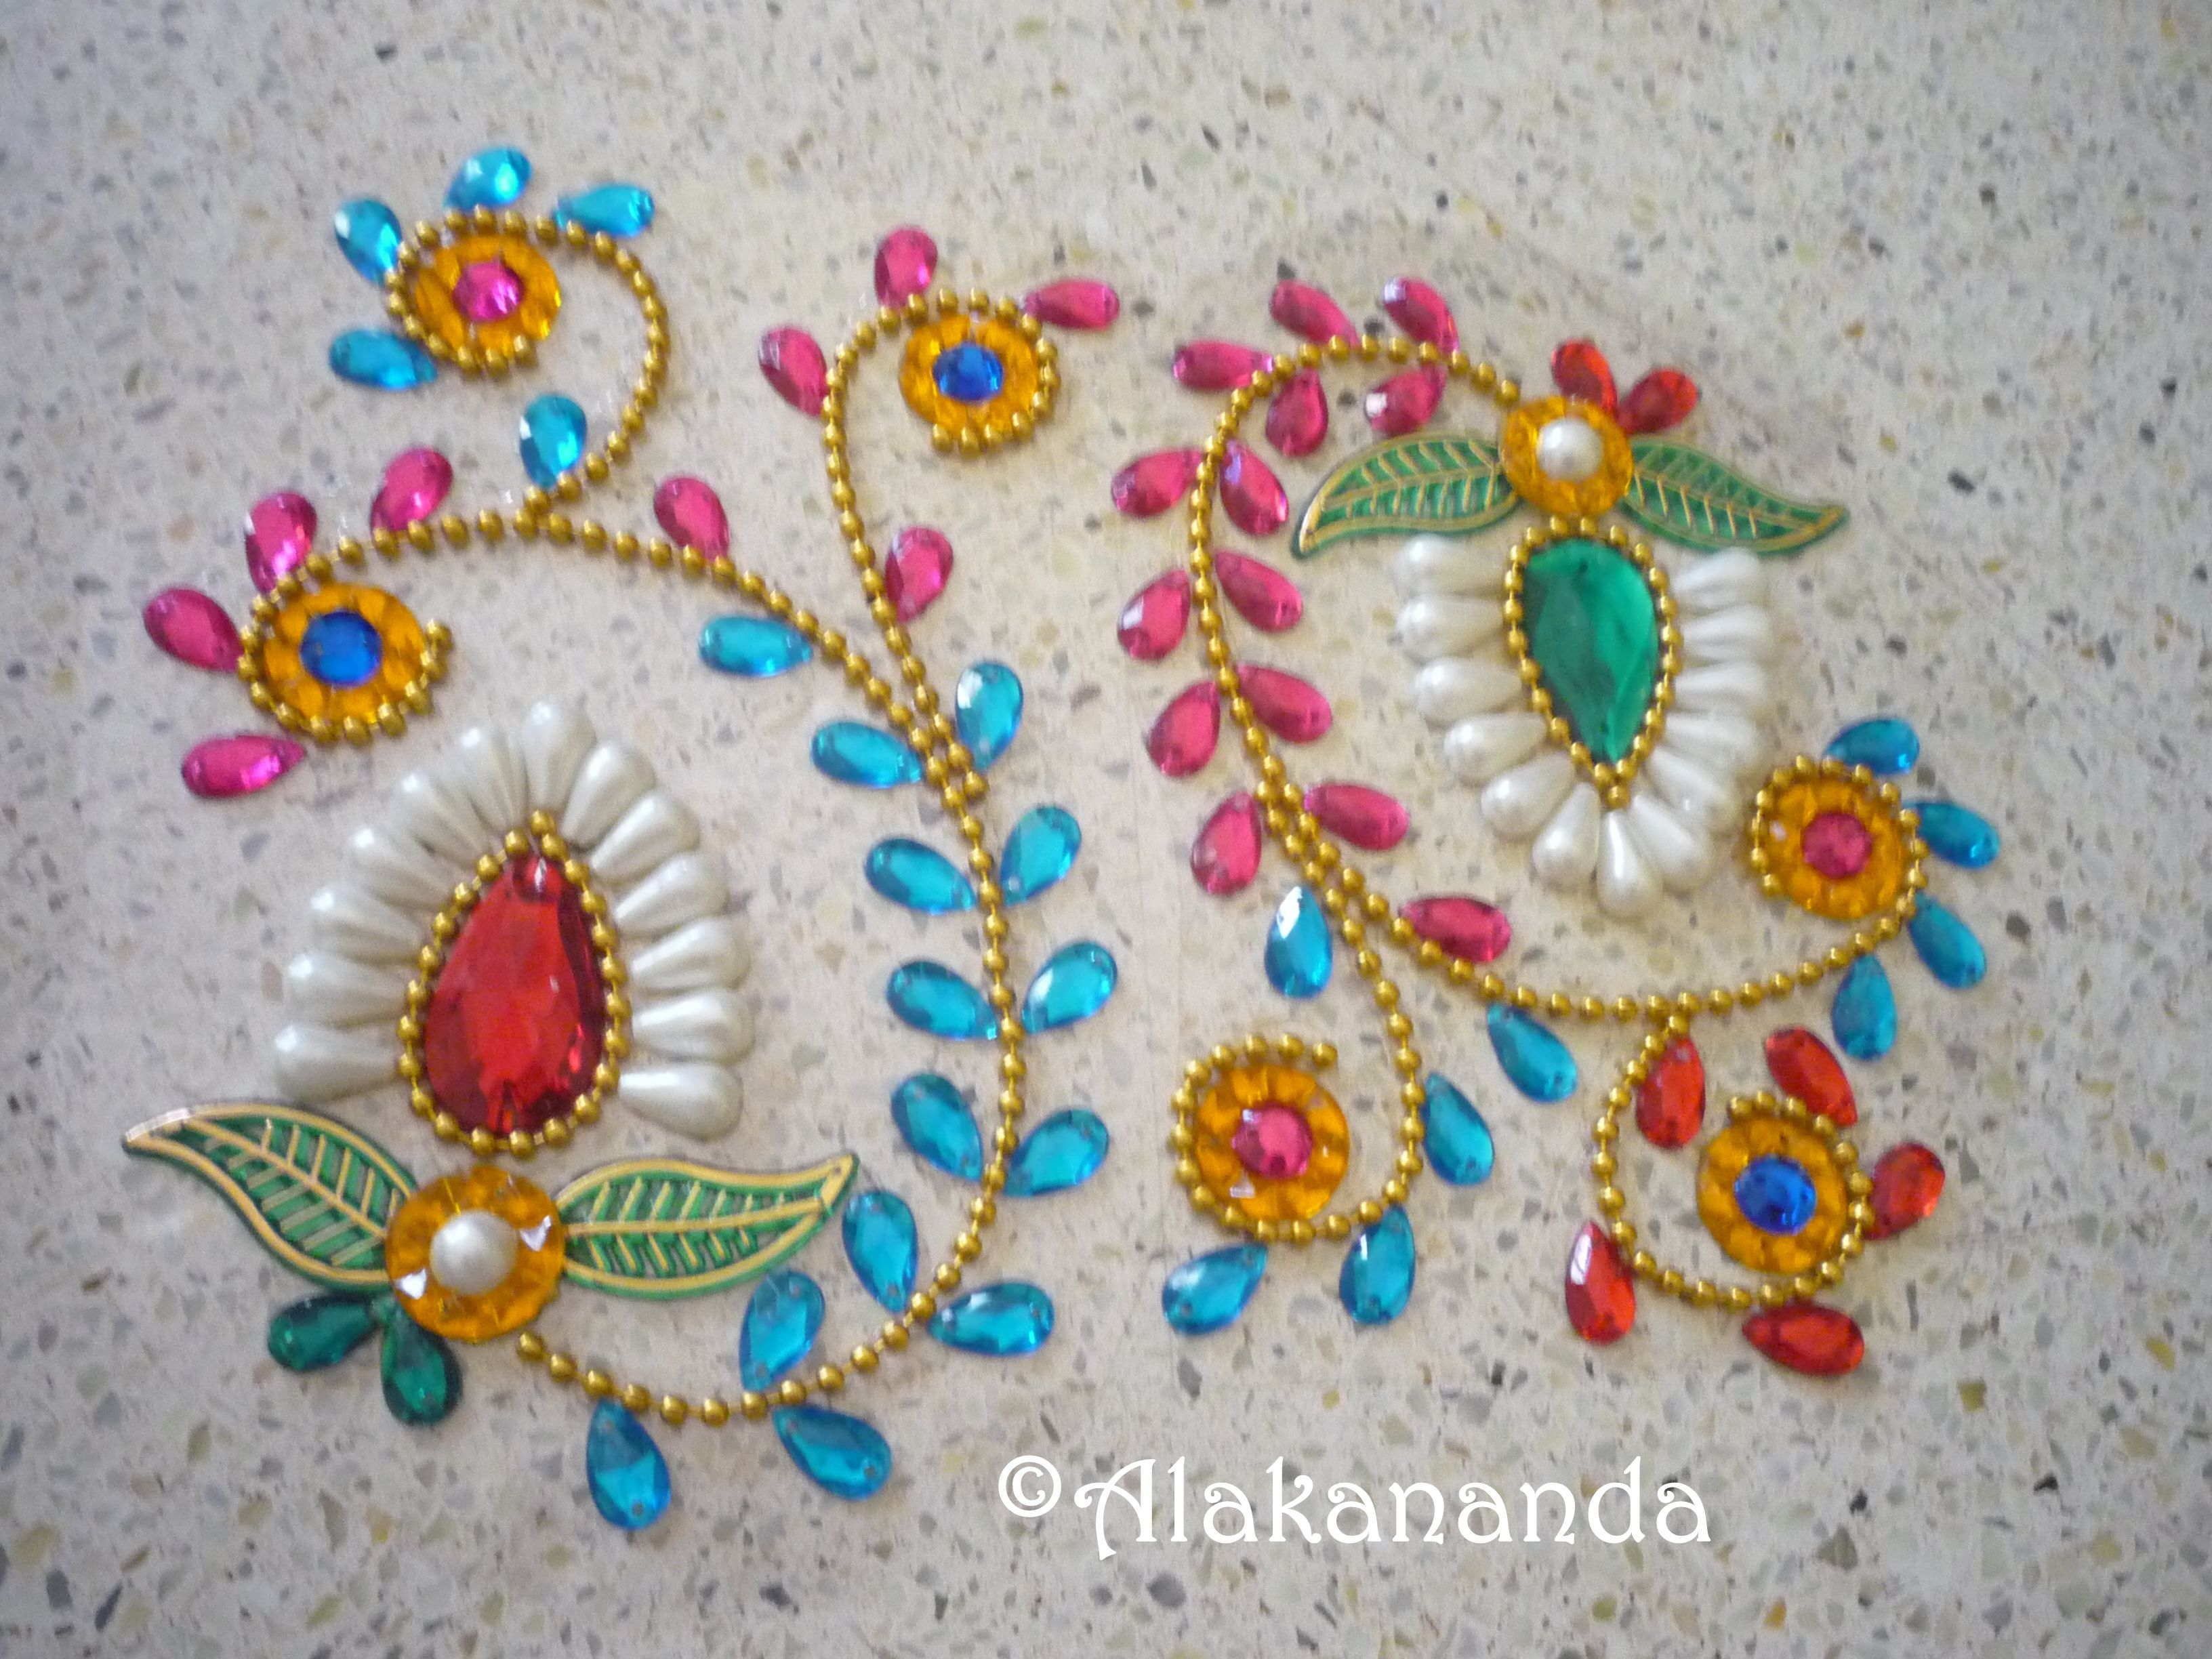 Diwali Decoration Ideas And Crafts Pin By Alakananda Prakash On Rangoli Diwali Craft Diya